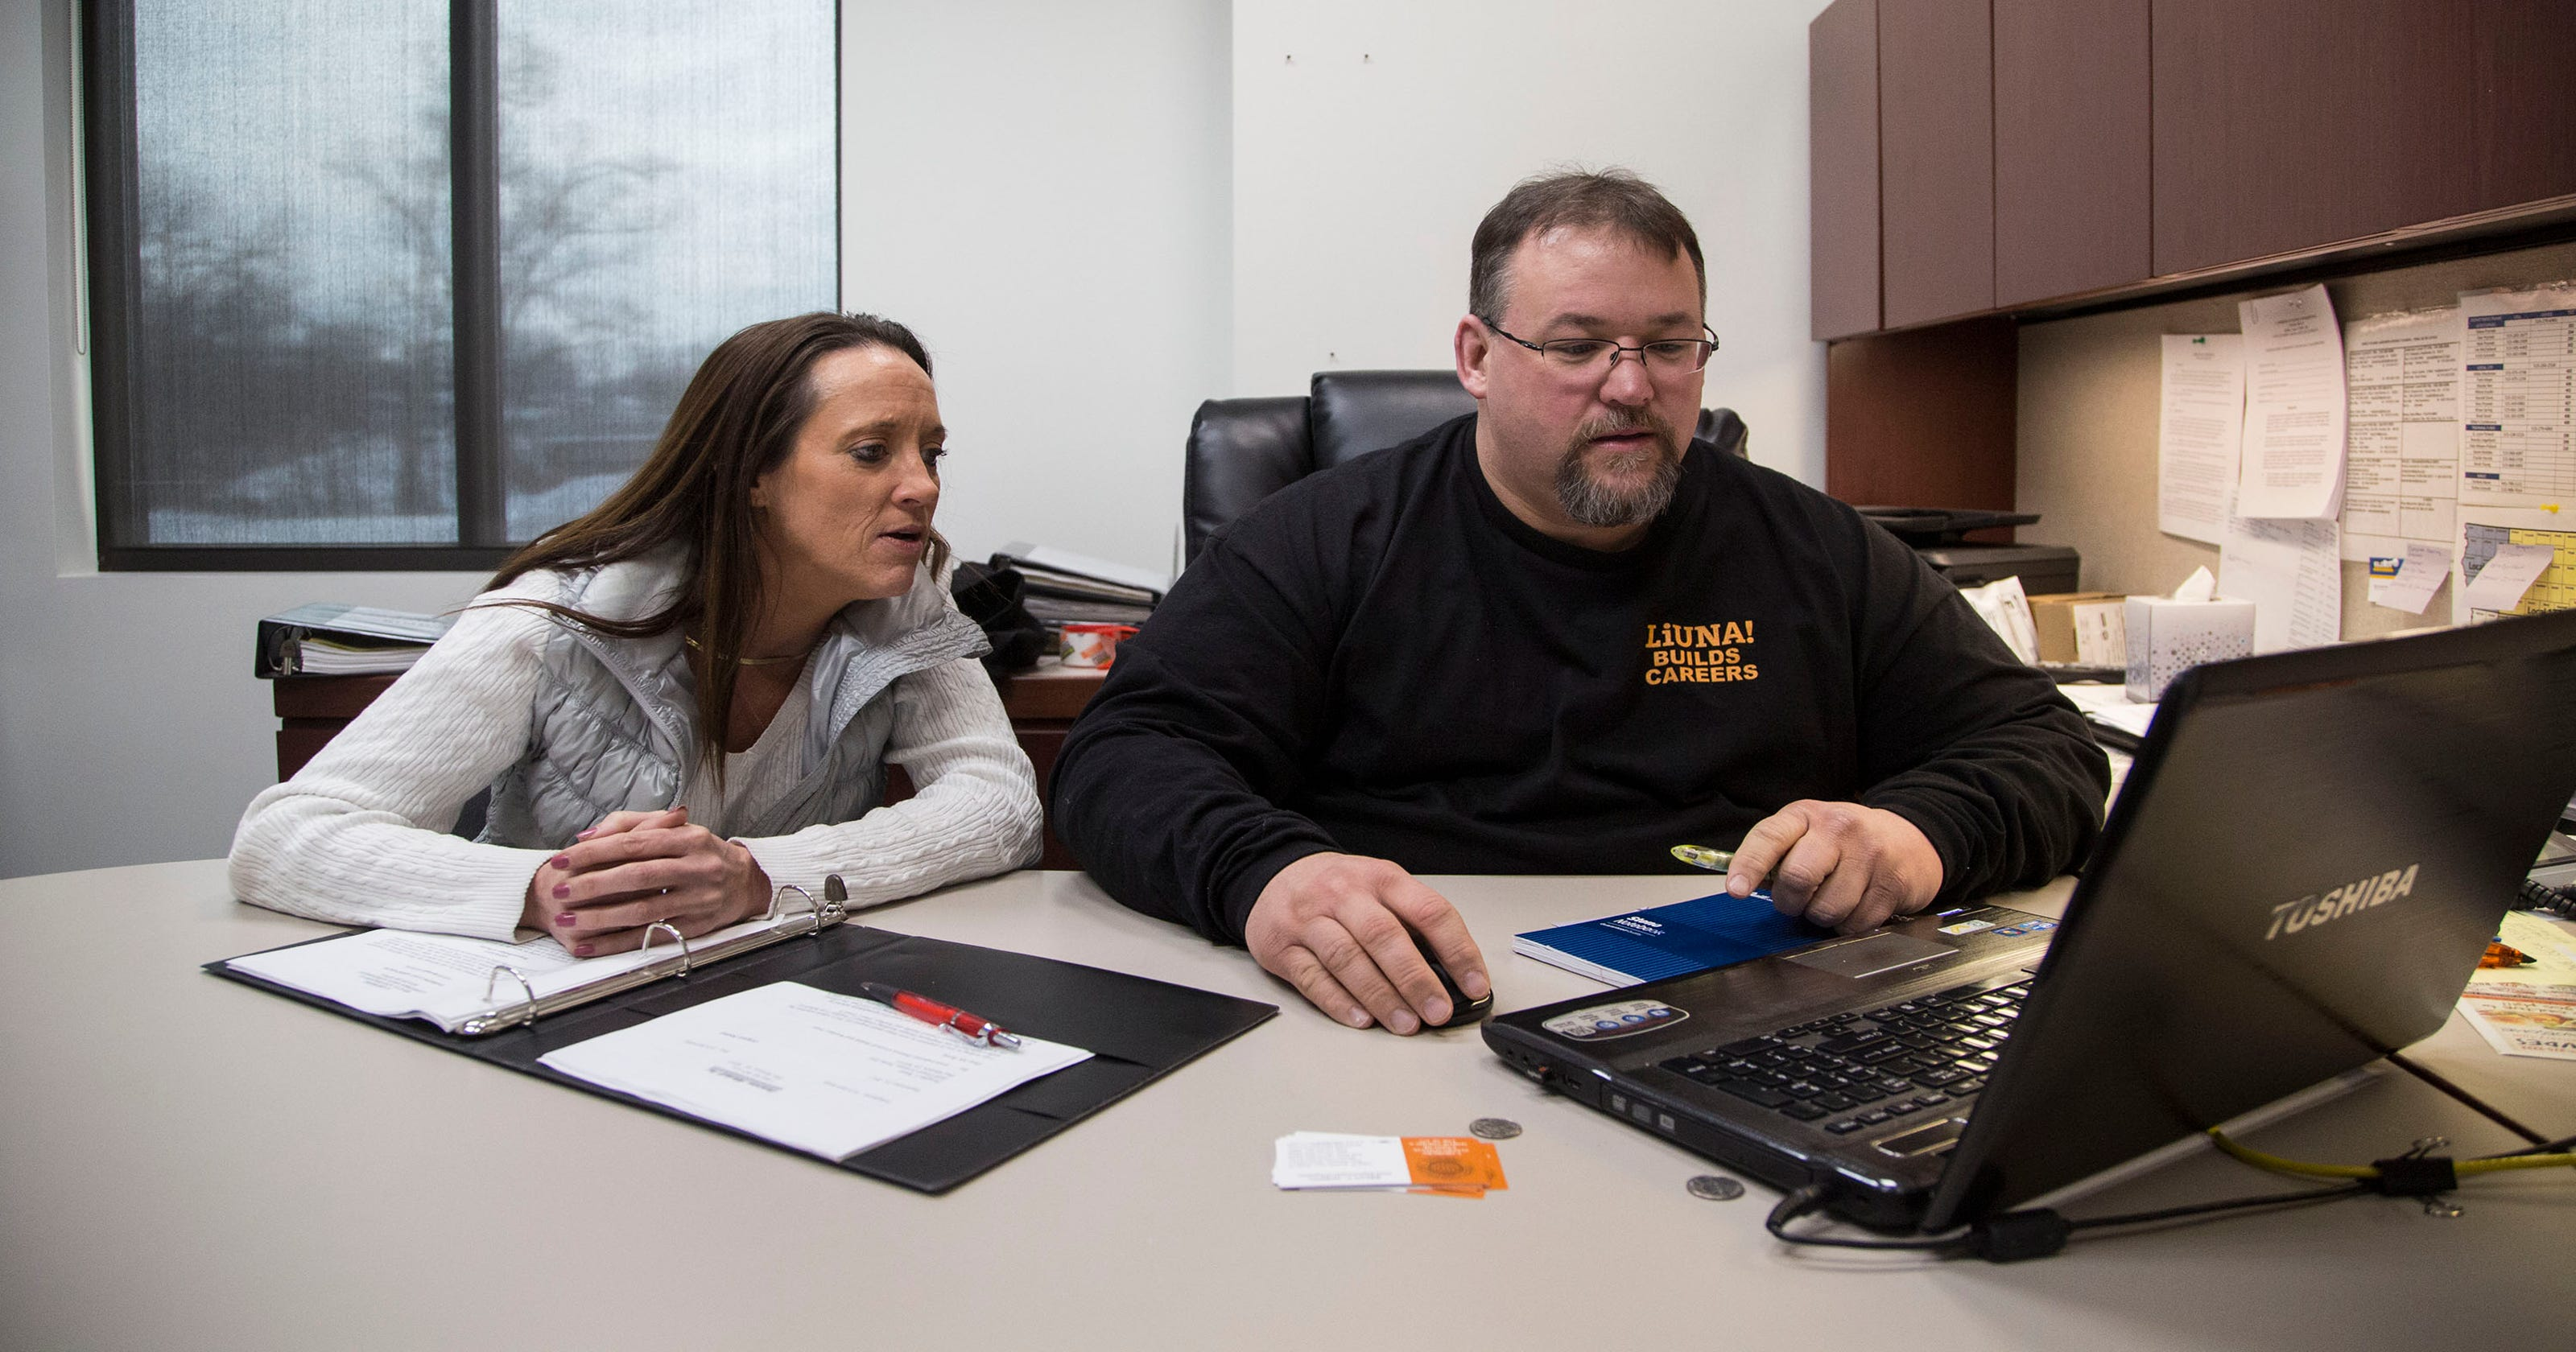 From locked up to new life: Iowa felons find second chances with